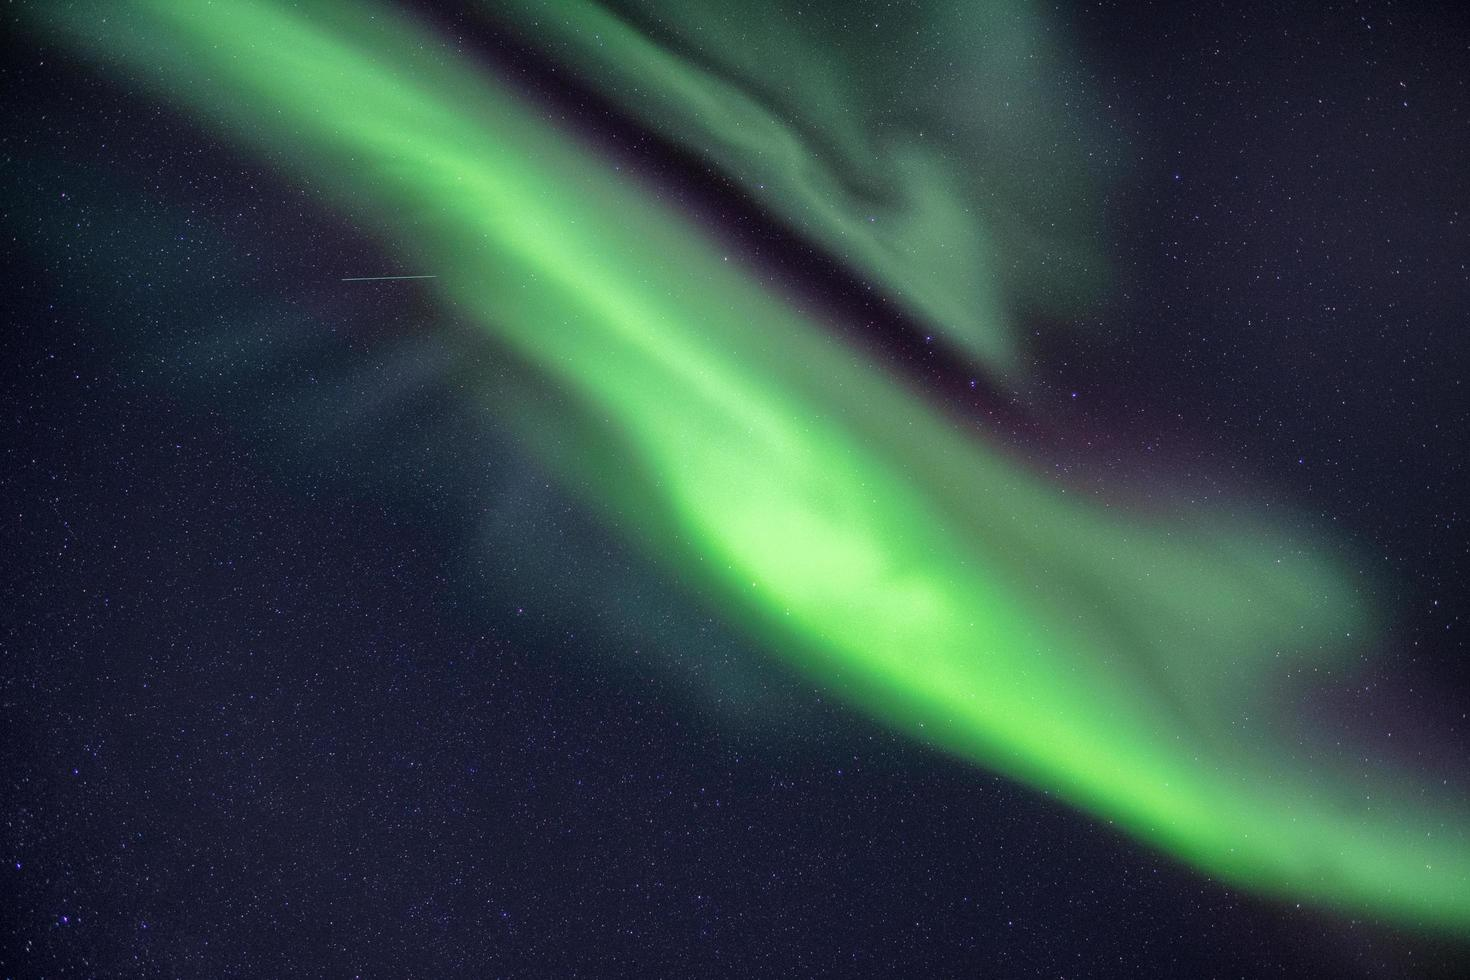 Northern lights in the night sky photo